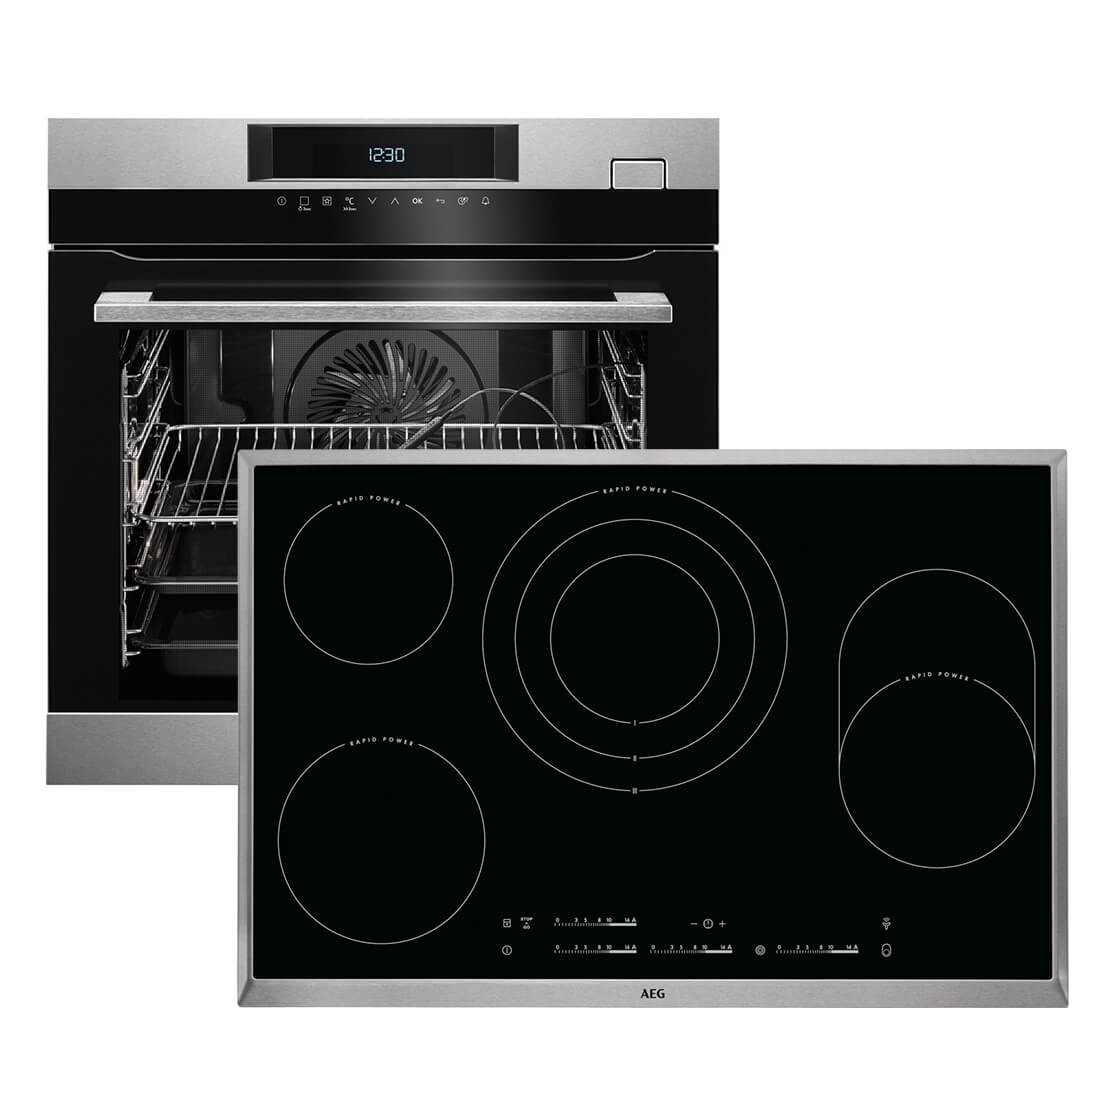 aeg bsk773 backofen set bsk774220m backofen hk854870x. Black Bedroom Furniture Sets. Home Design Ideas